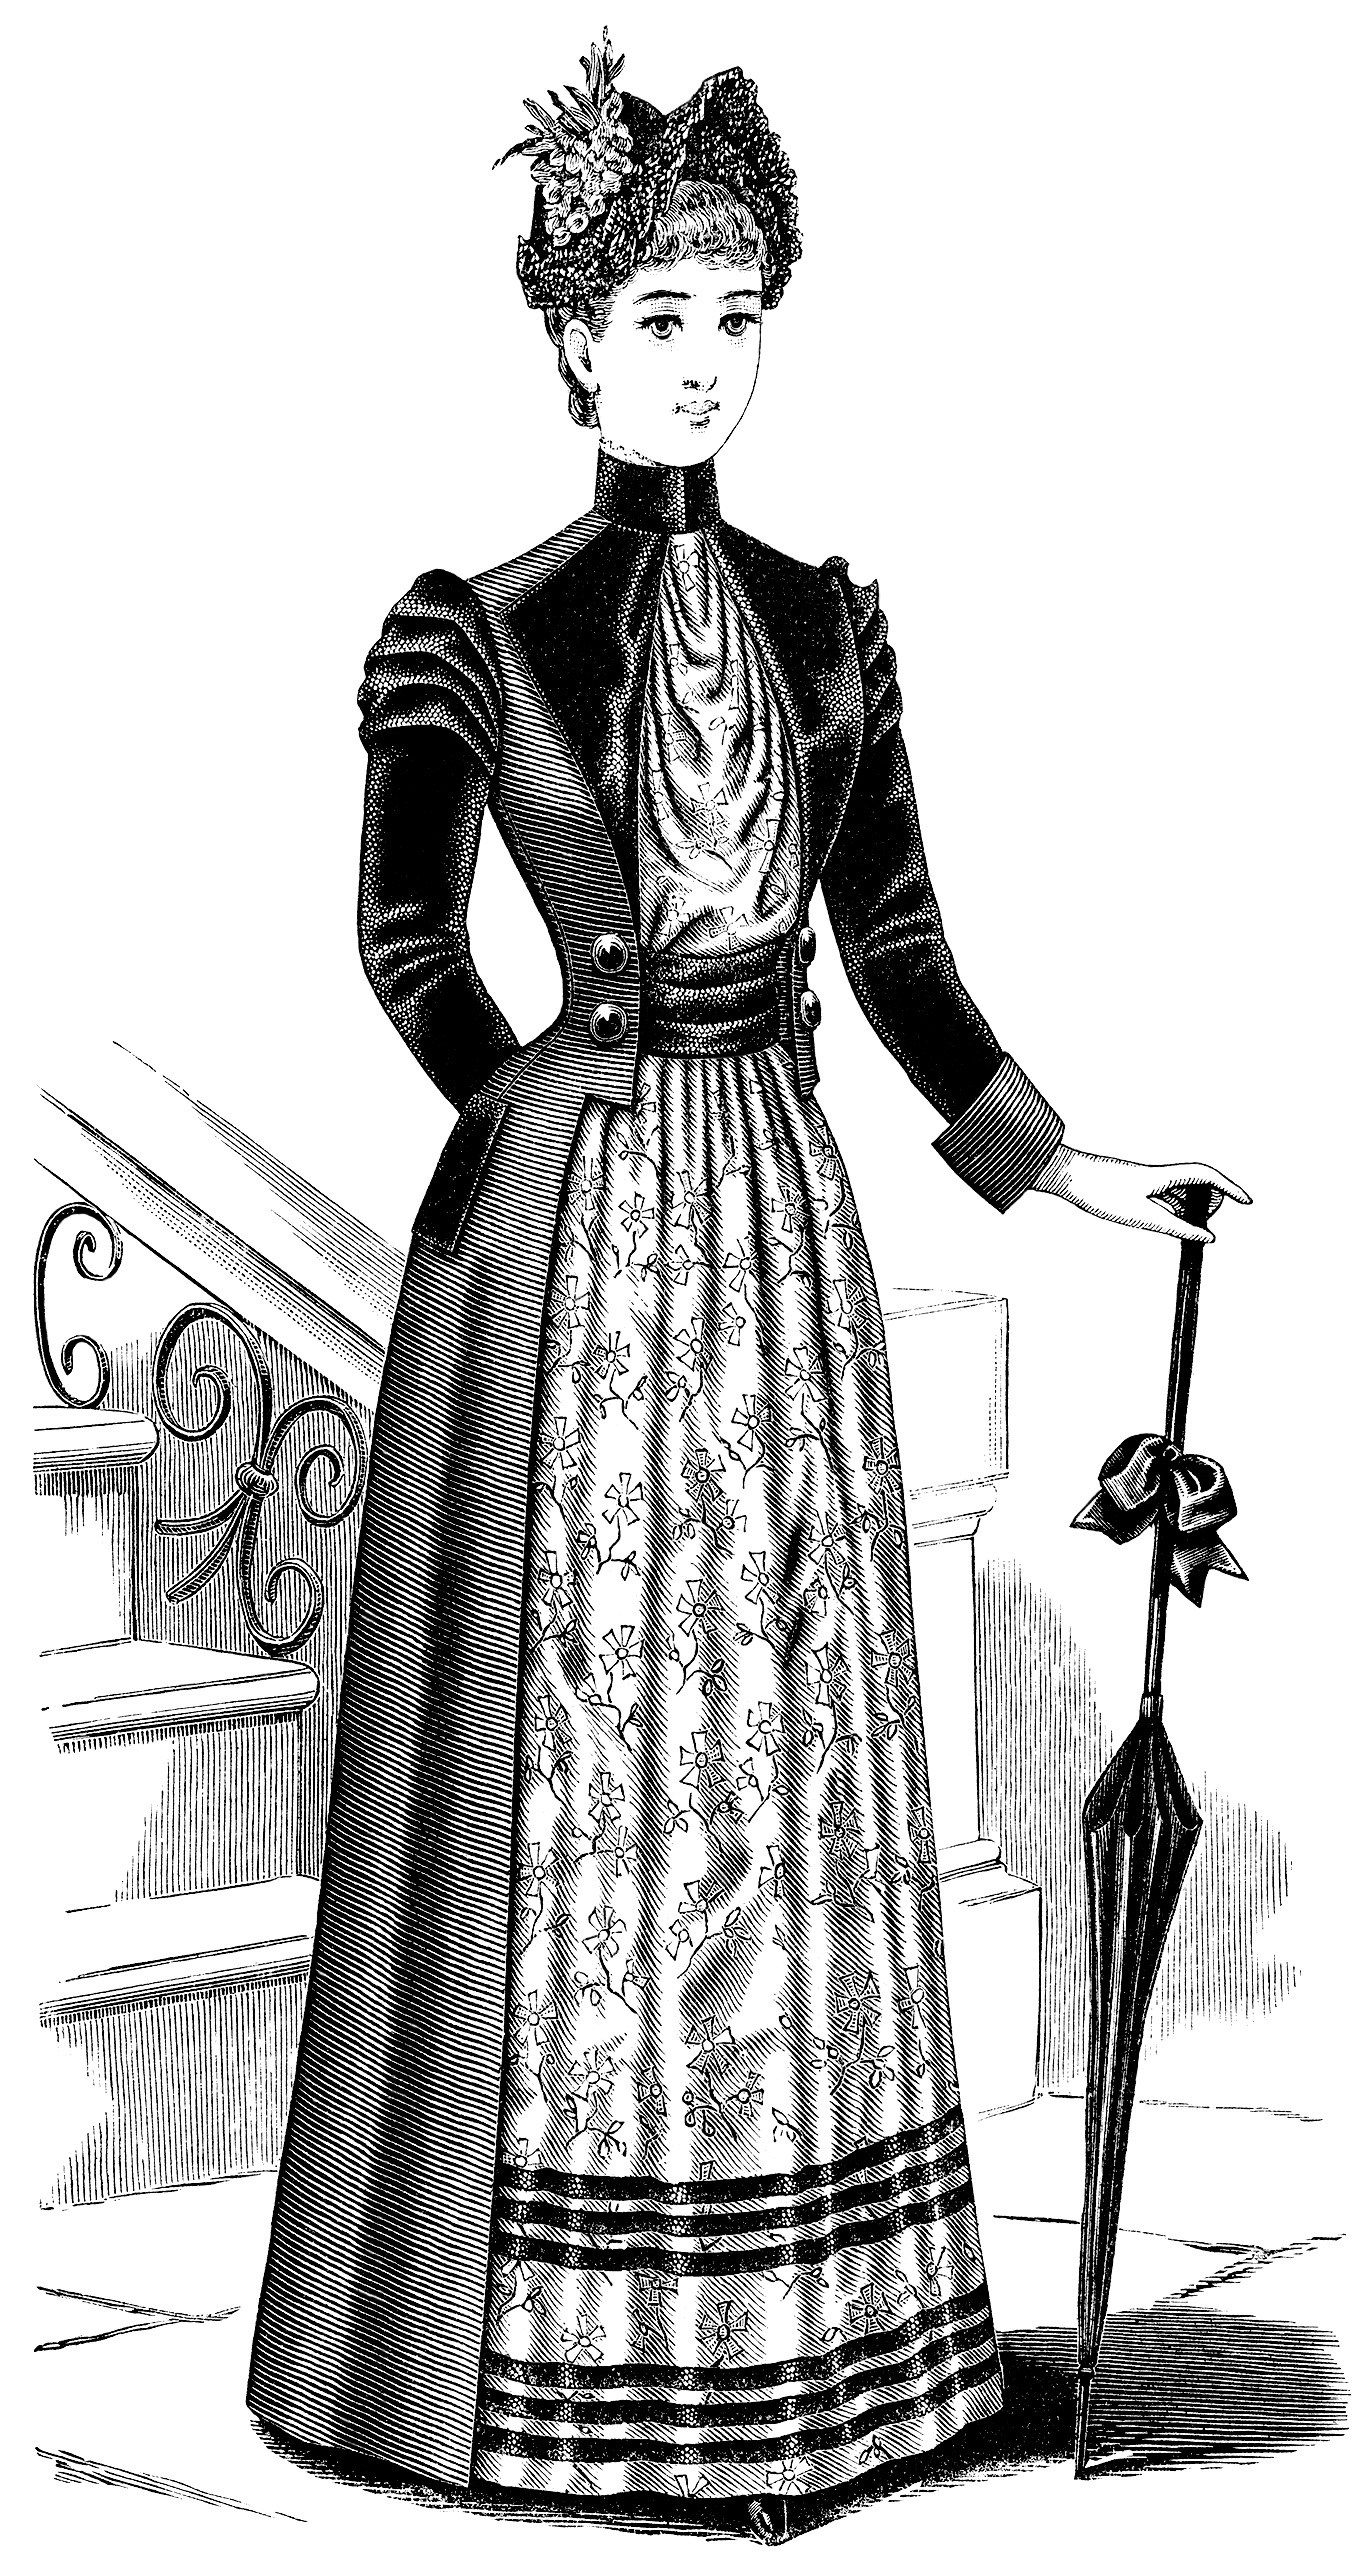 Victorian lady, black and white clip art, Victorian fashion image, ladies toilette, vintage fashion illustration